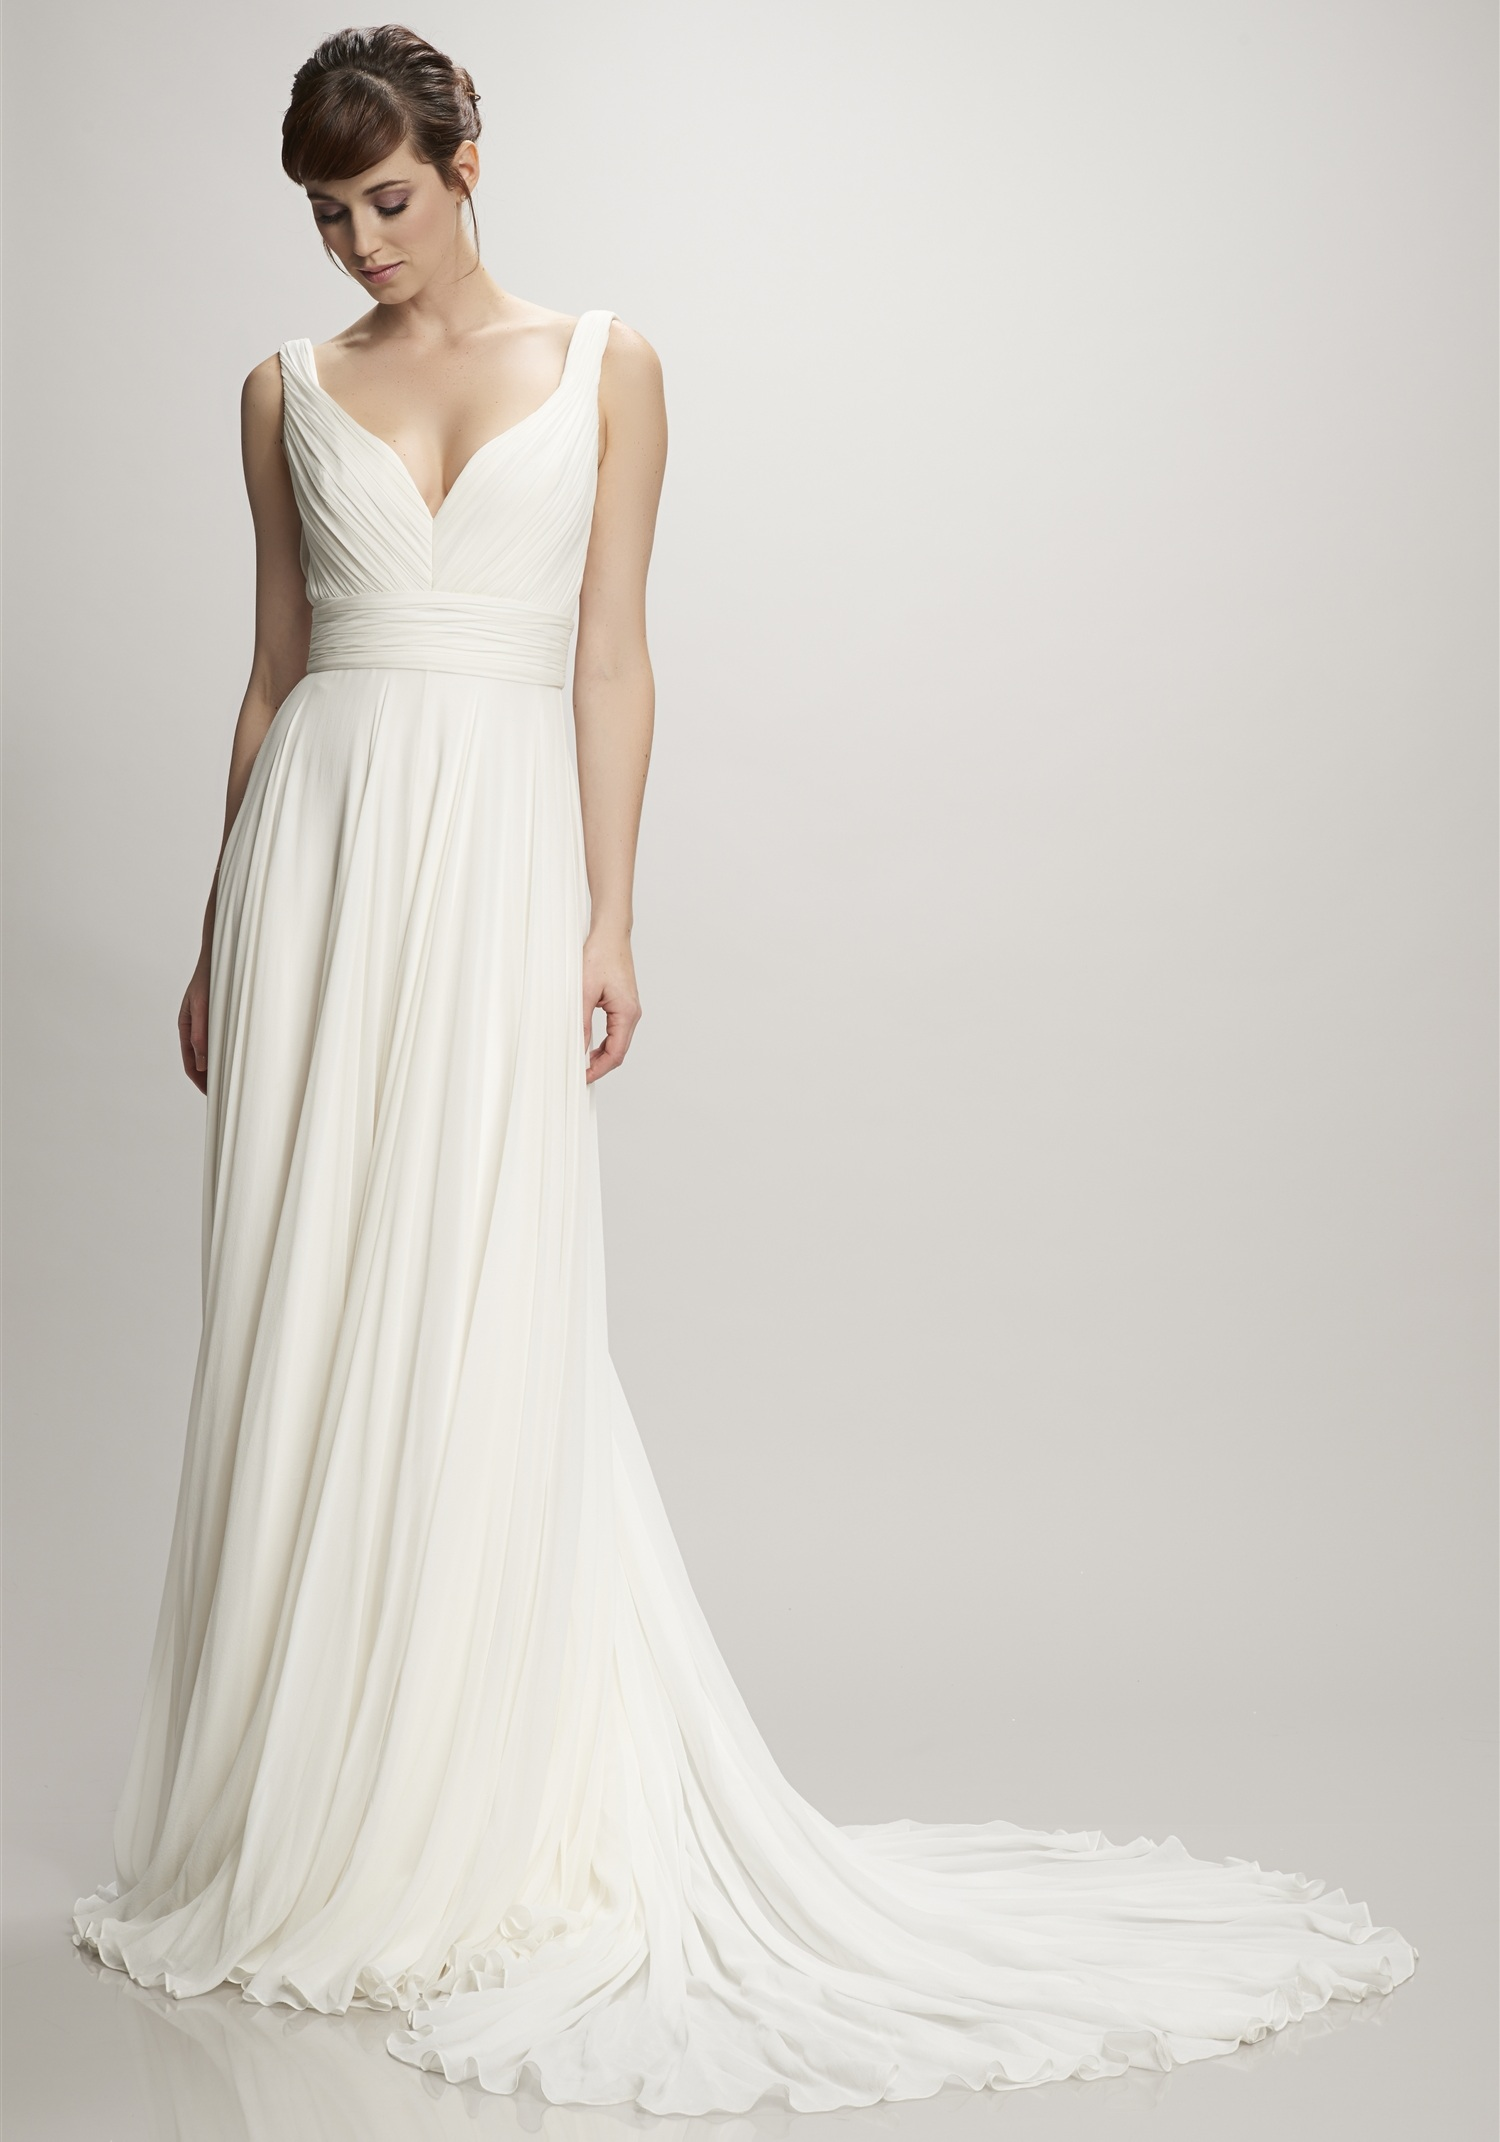 Theia 890256 Ivory // Retail Price $1450 | Our Price $1015